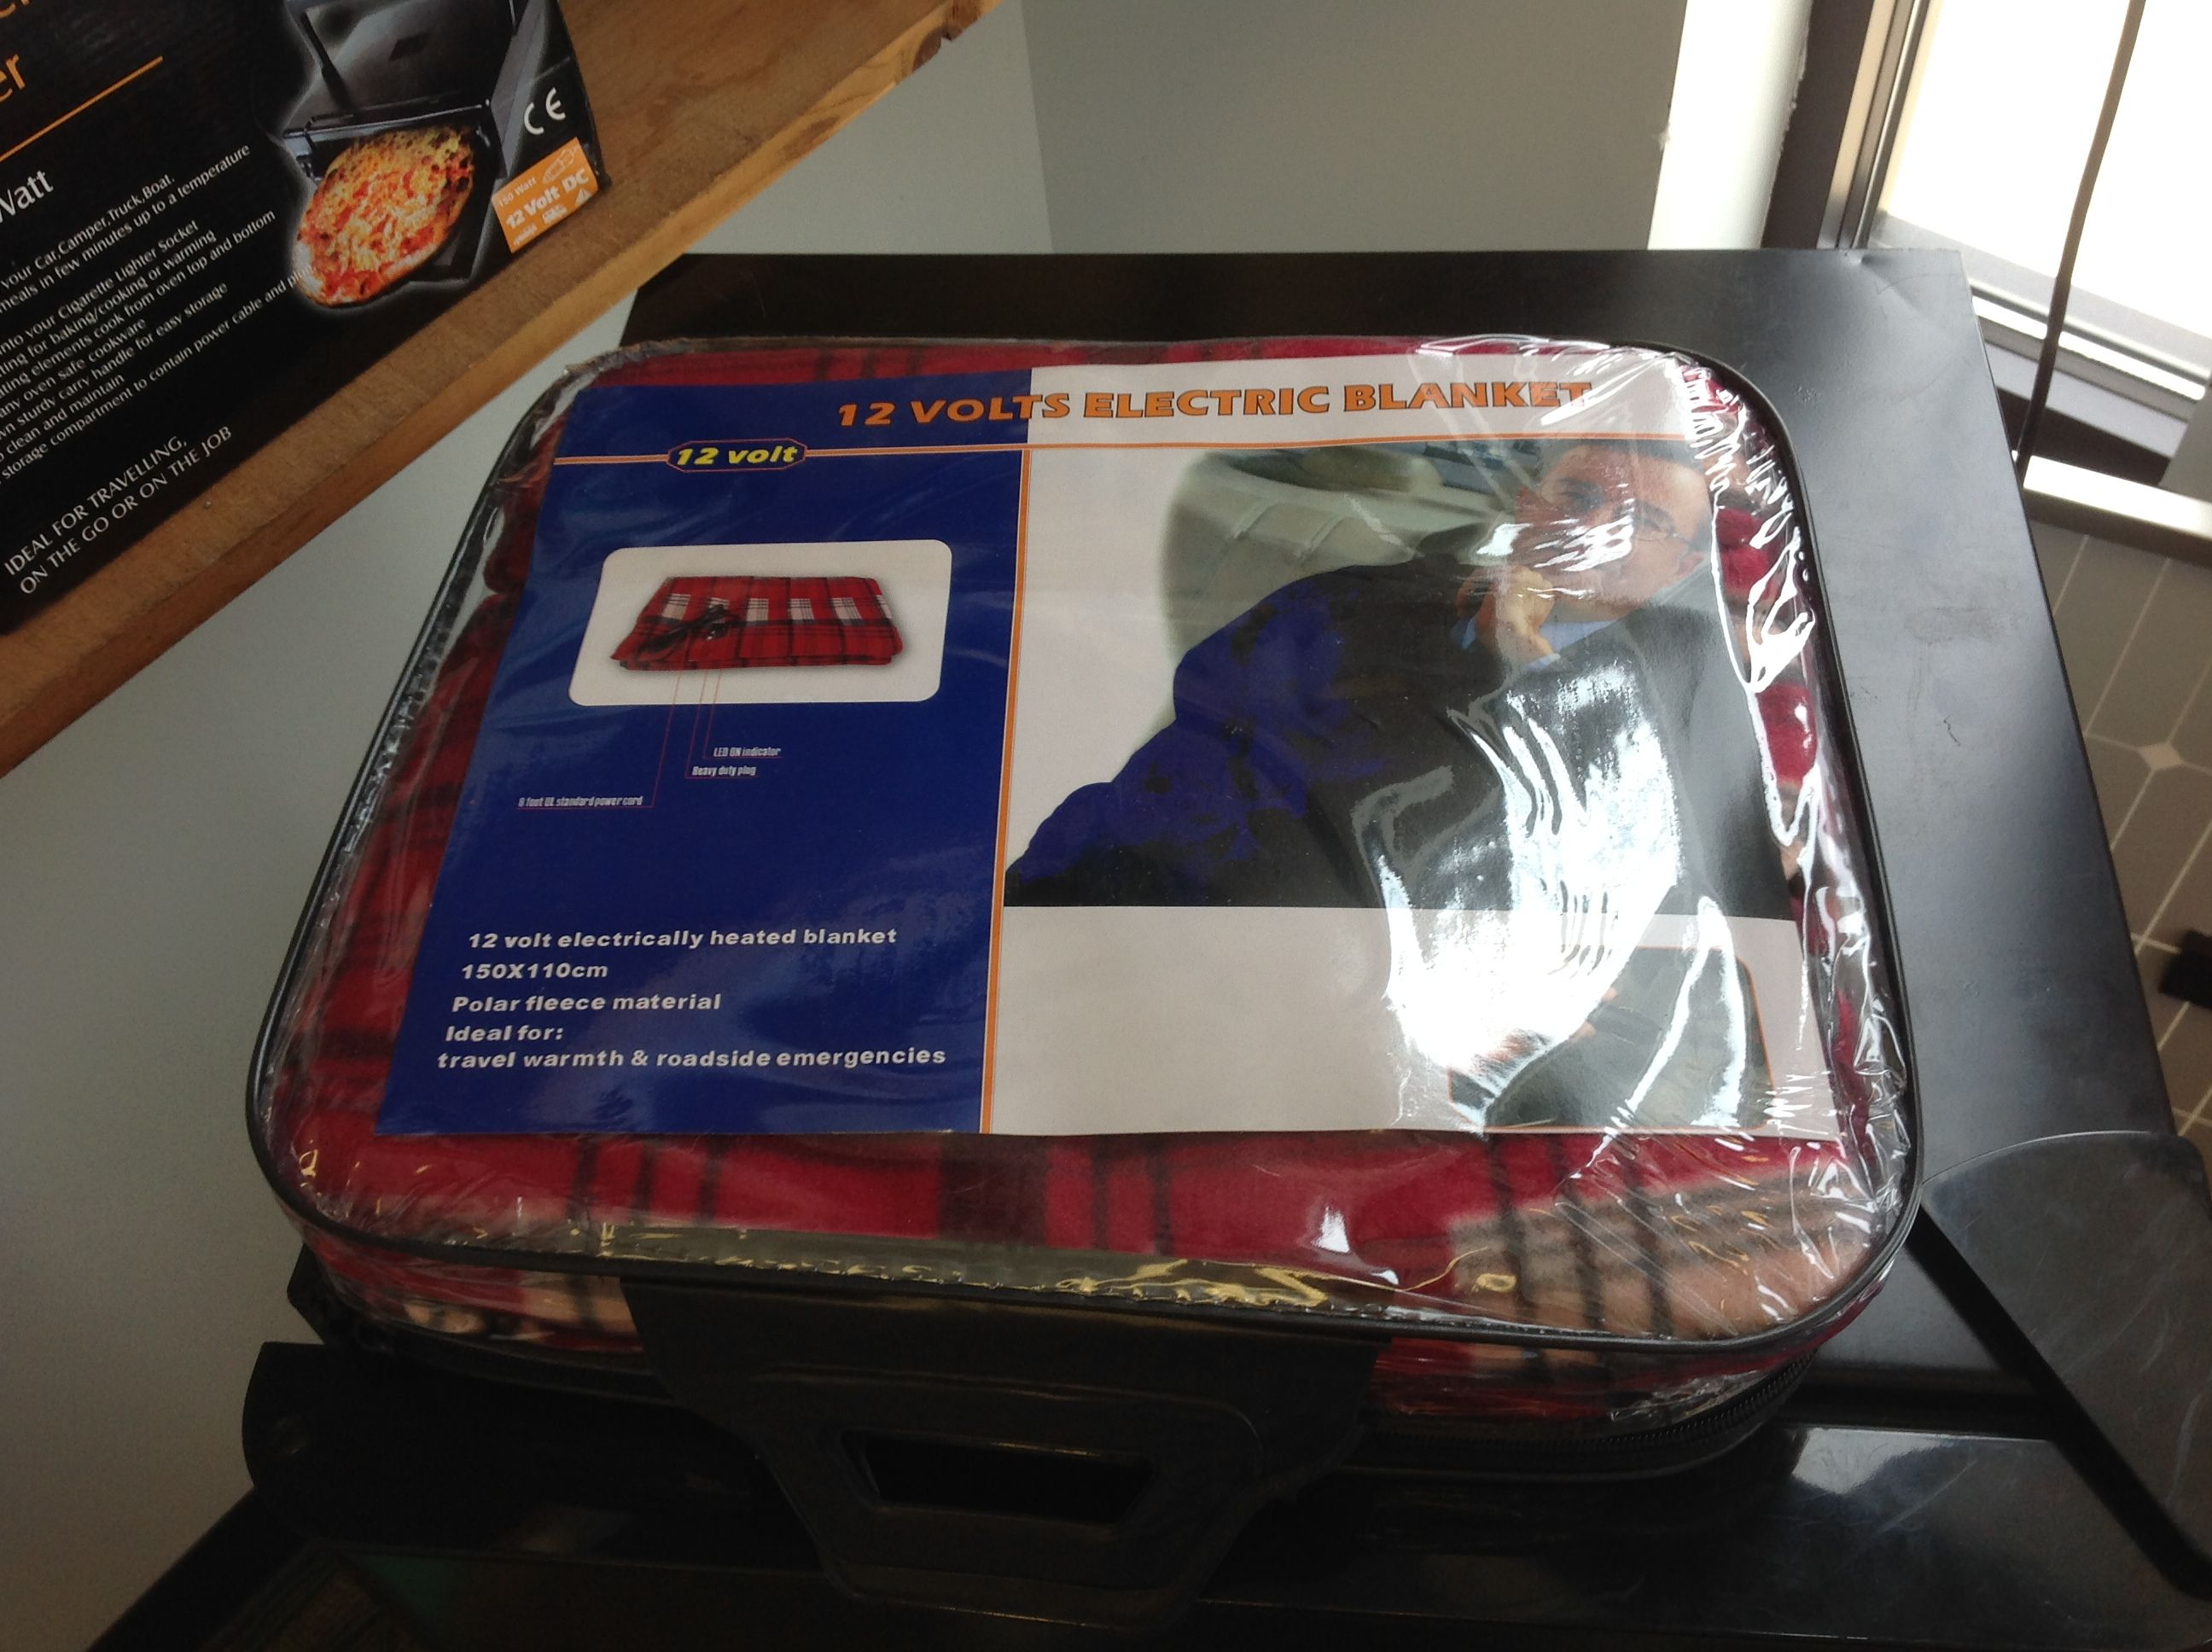 Forever-Ready has 12 Volt electrically heated blanket 150x110 cm.  These are polar fleece material.  Ideal for:  travel and warmth and roadside emergencies.